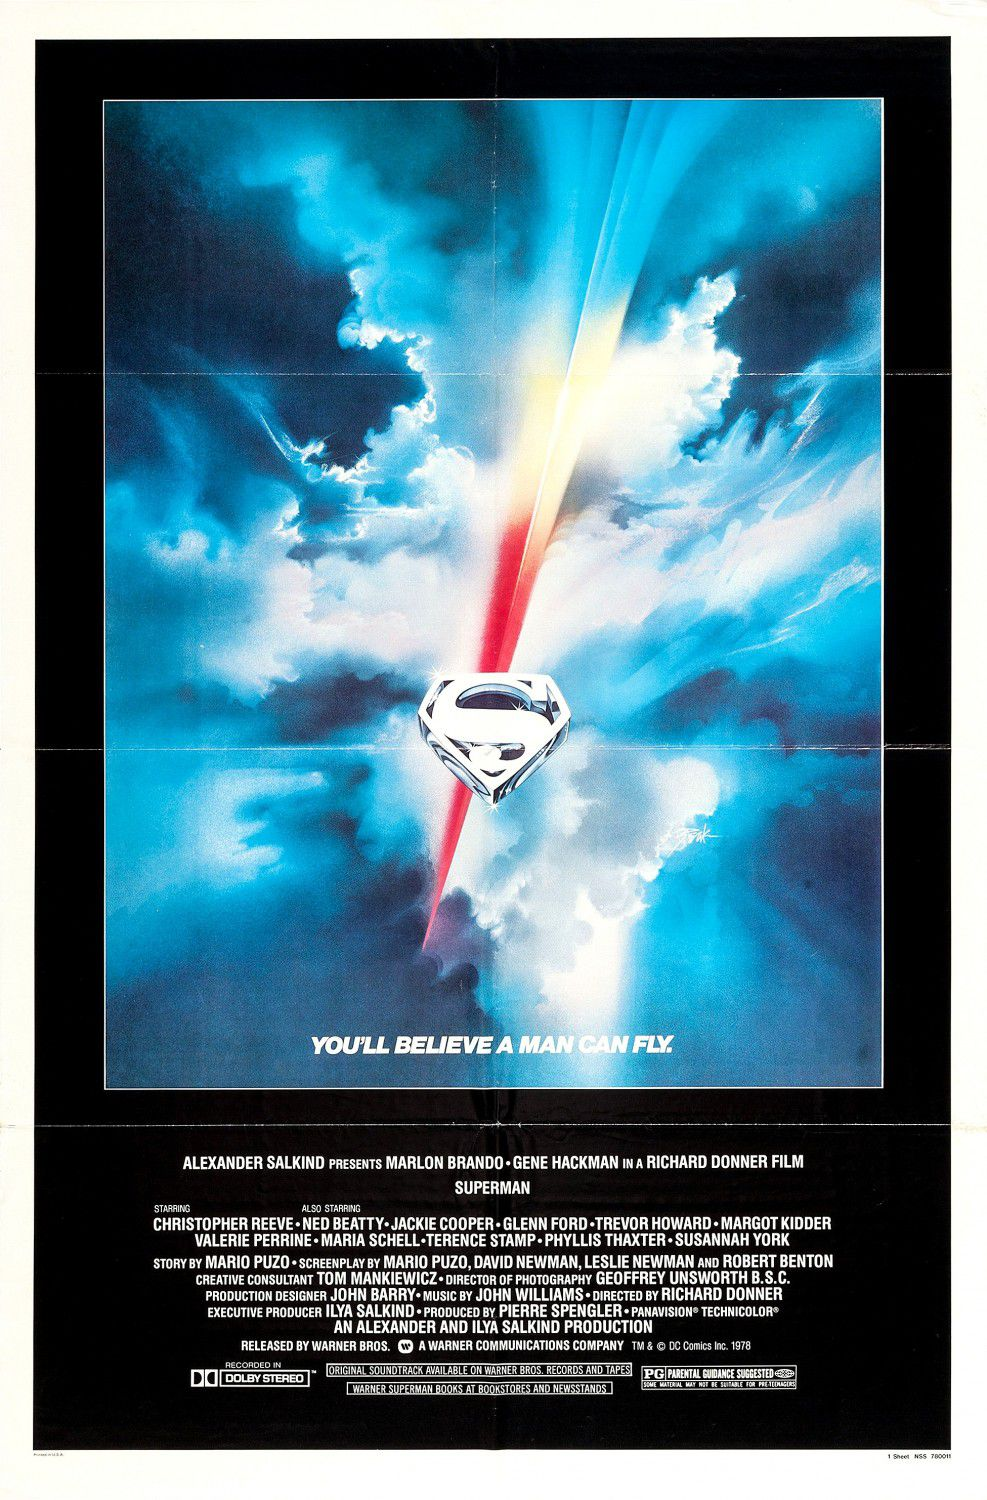 Superman 1 (1978) - poster collection